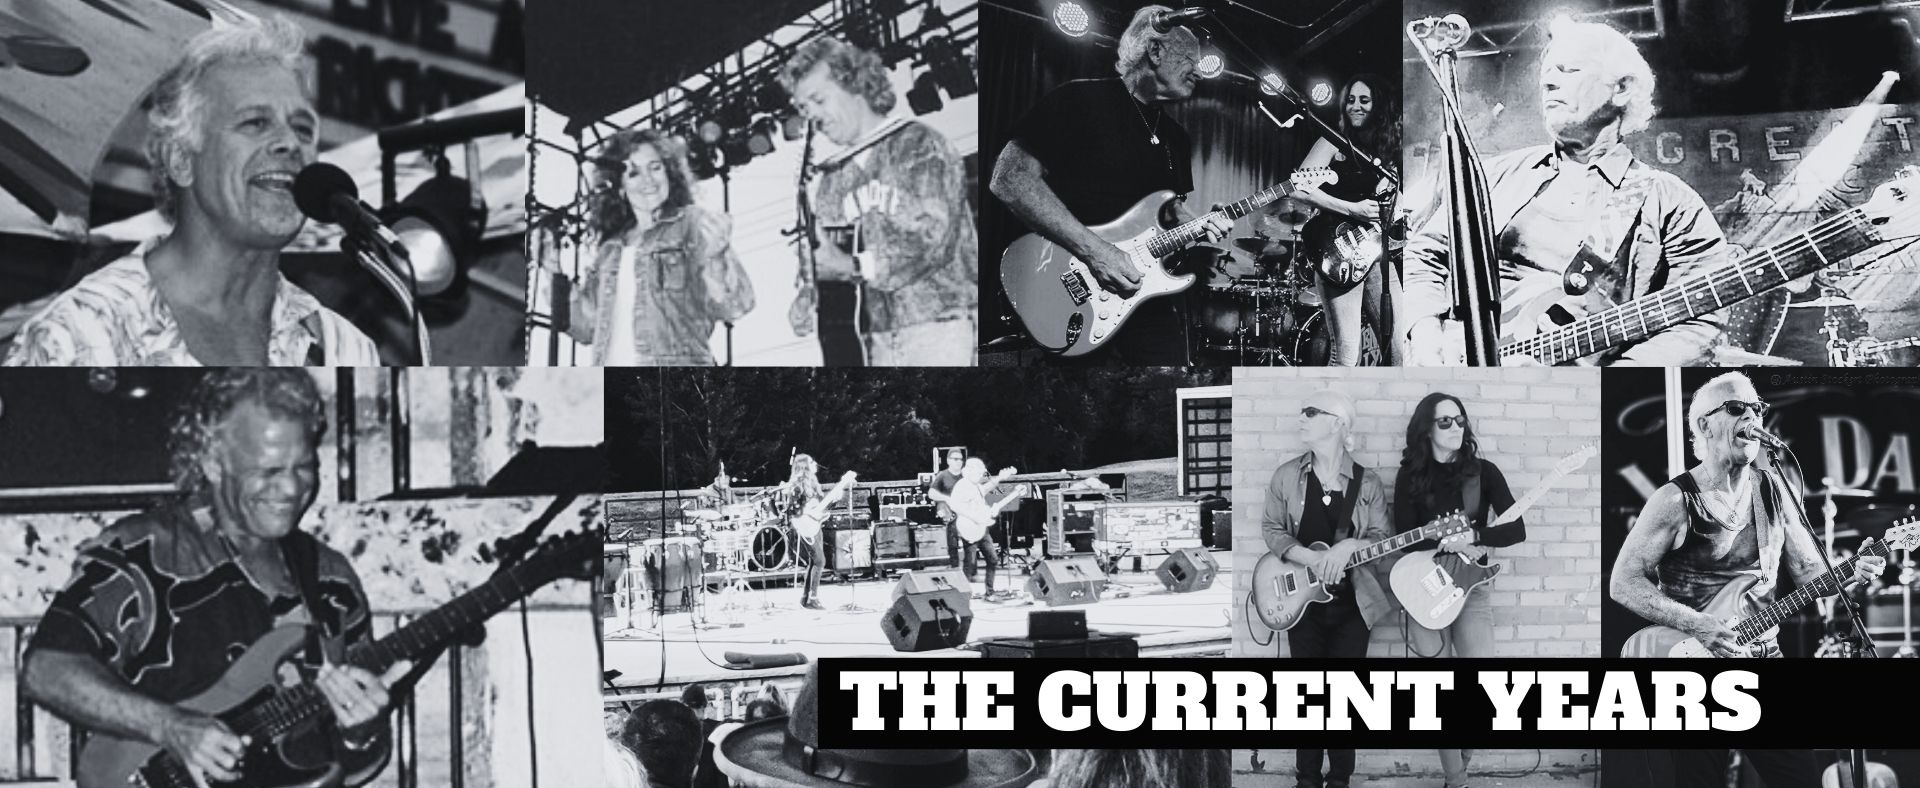 Richard Torrance - The Current Years